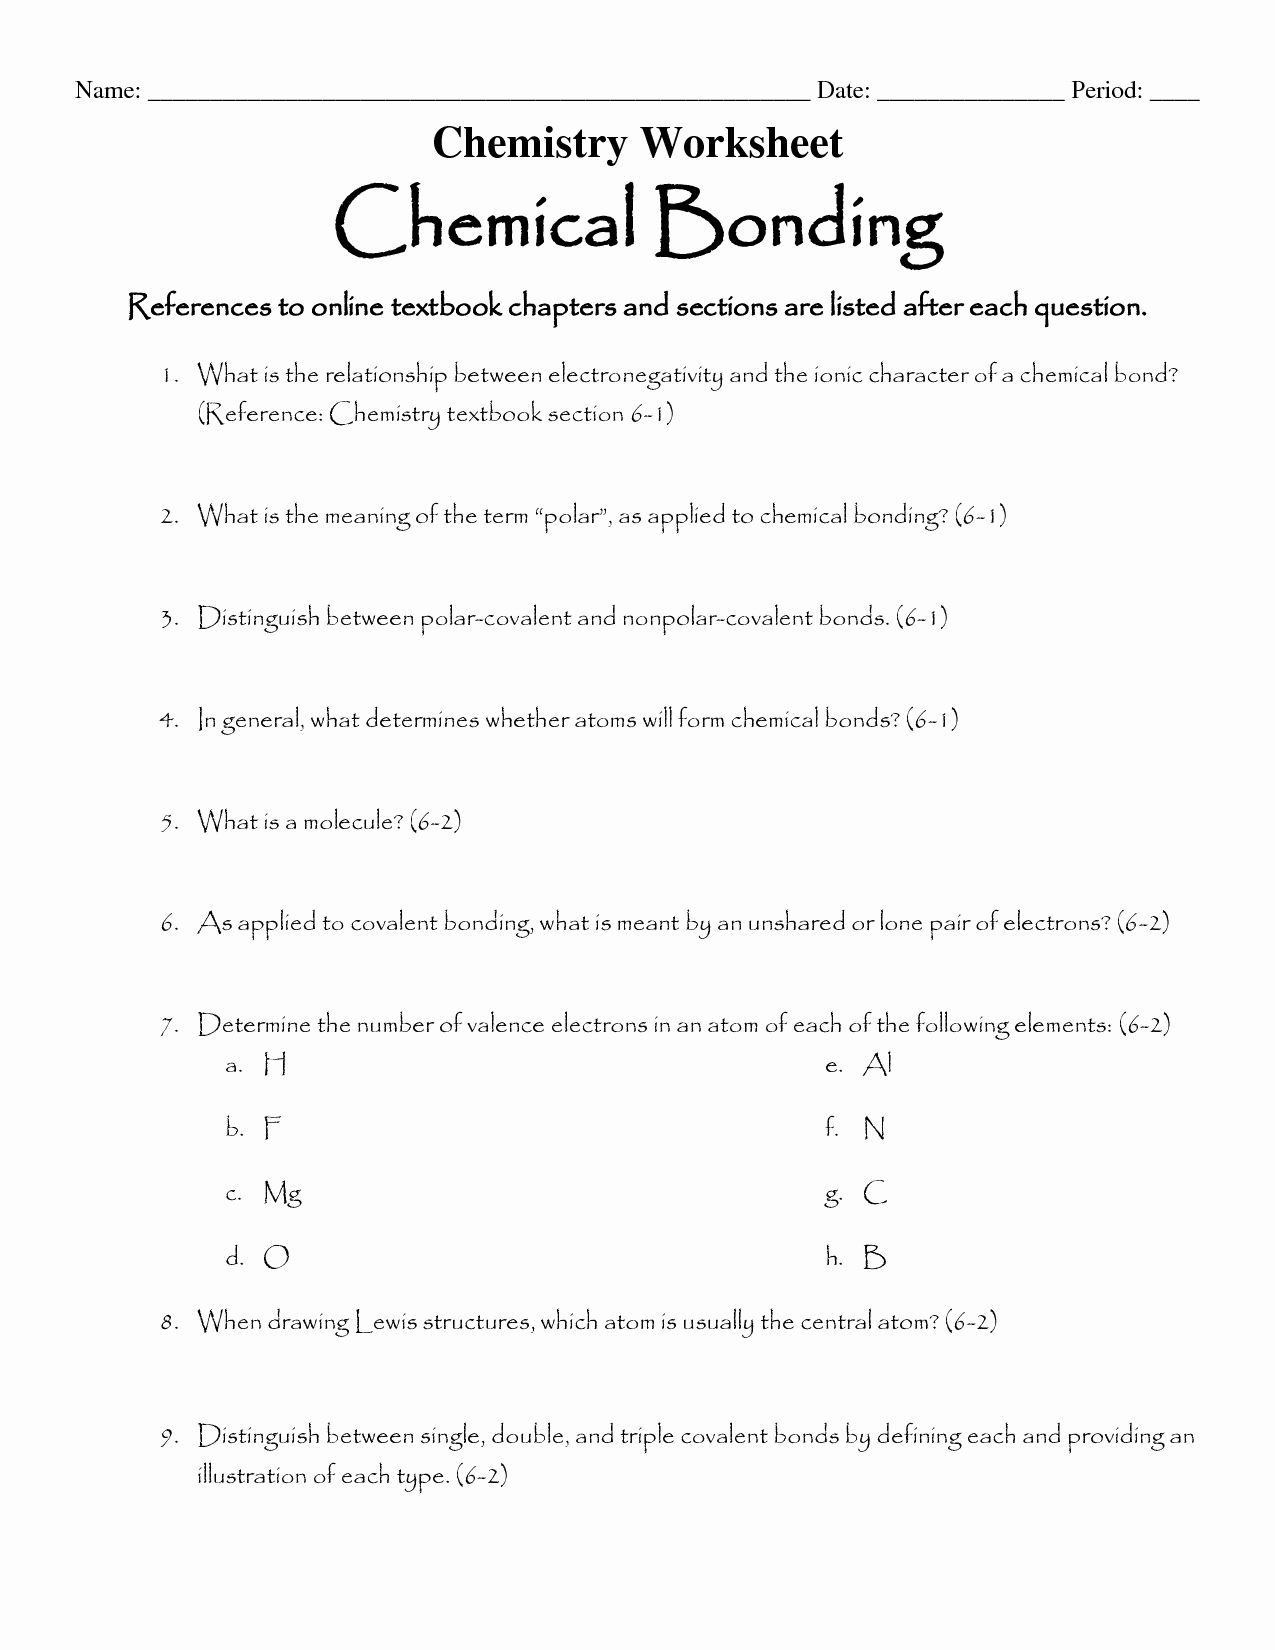 Chemical Bonding Worksheet Key Unique 16 Best Of Types Chemical Bonds Worksheet